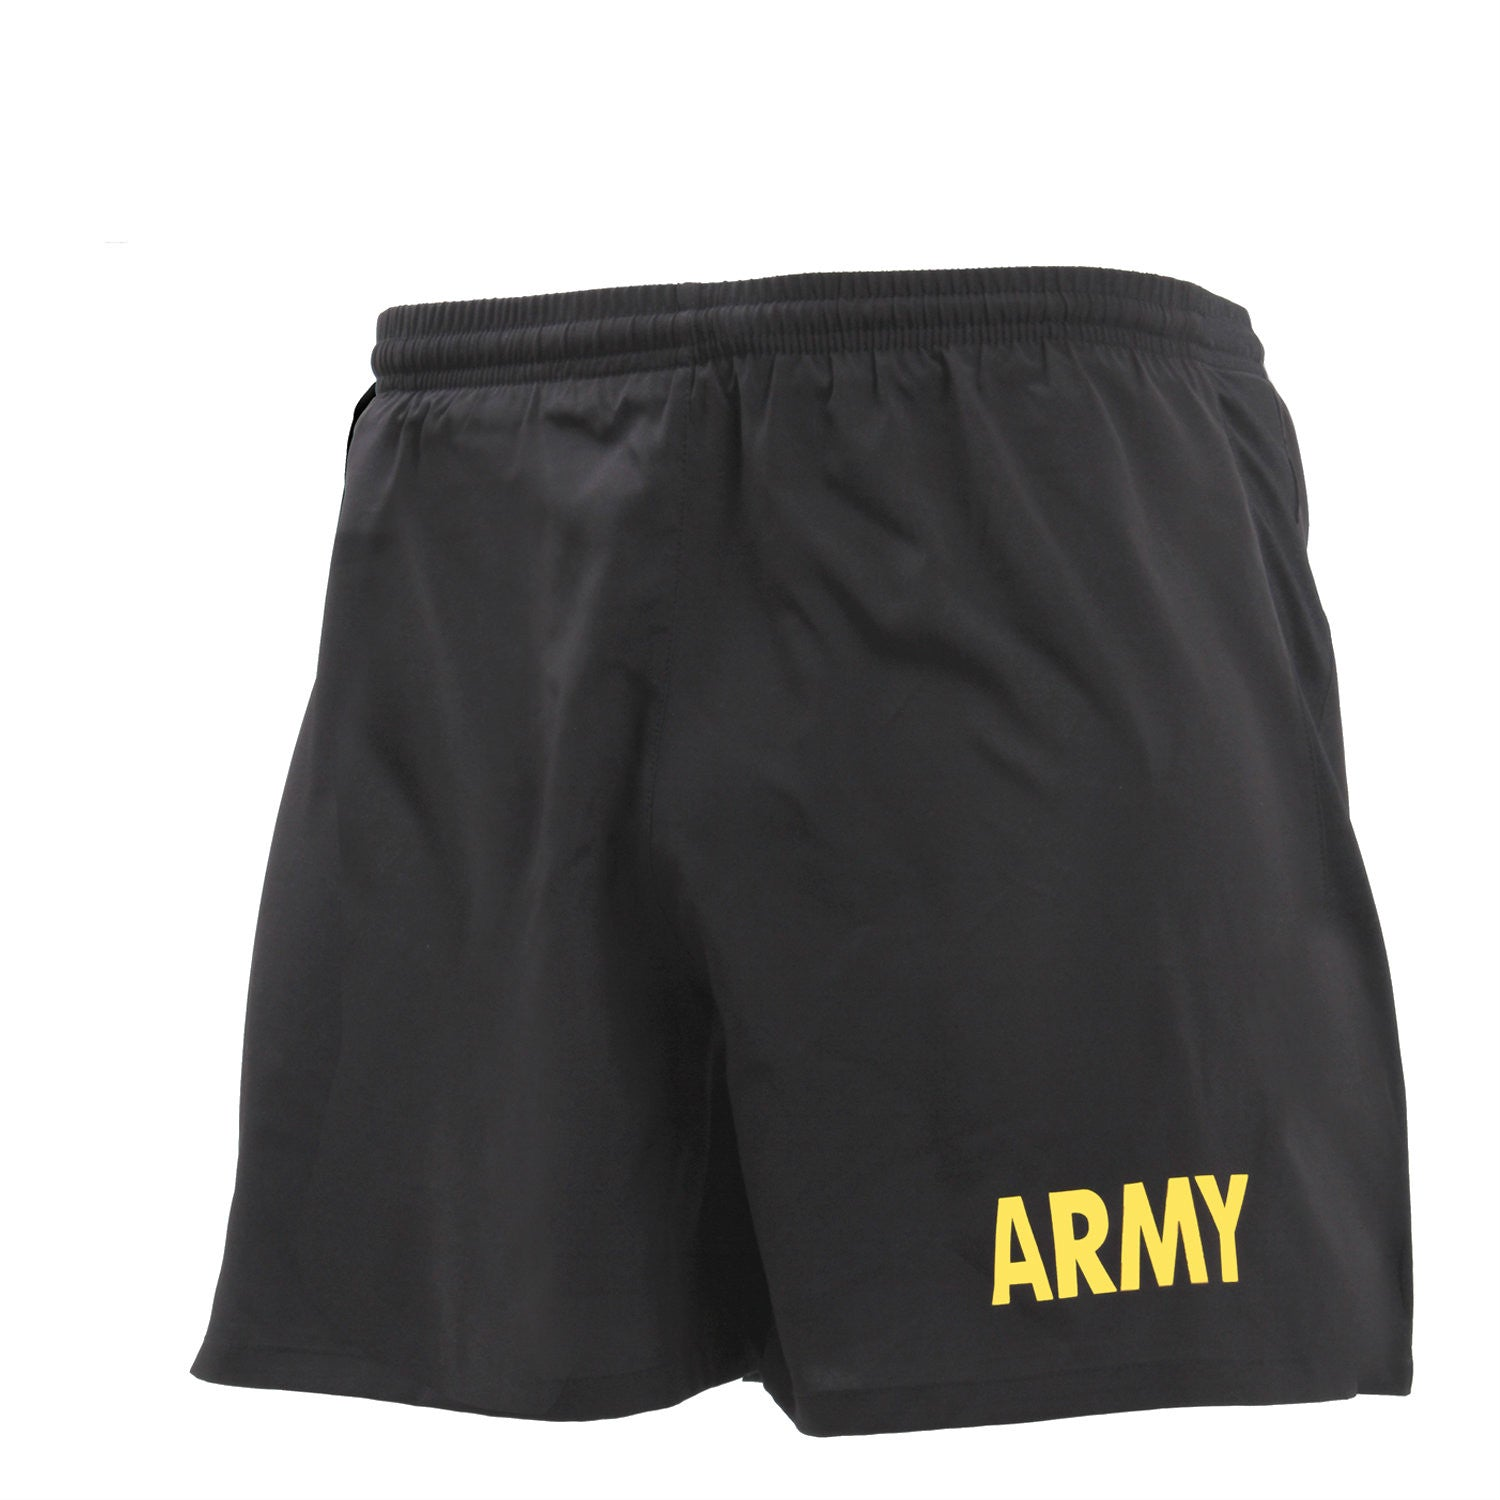 Army Physical Training Shorts Black / Gold